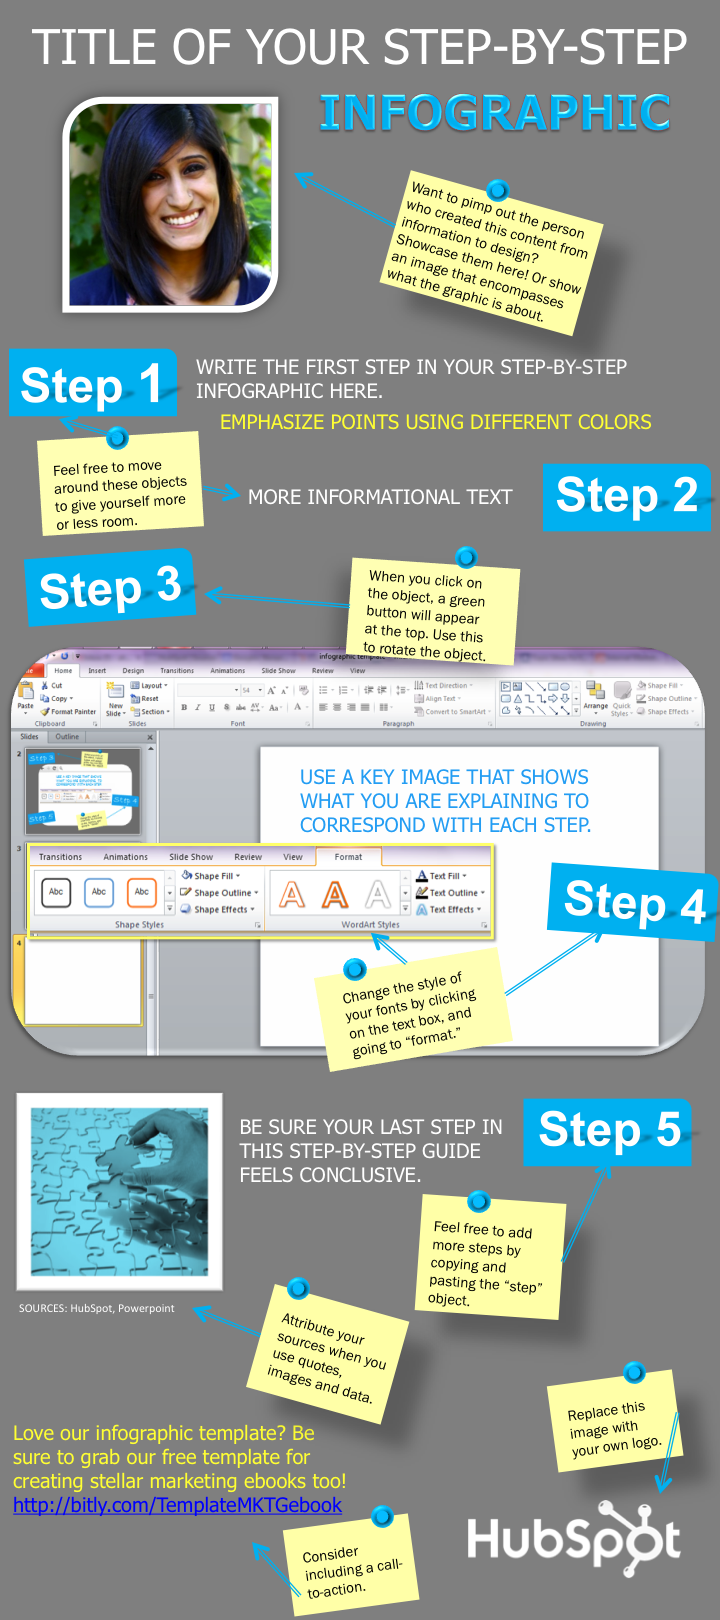 How to Create an Infographic in PowerPoint